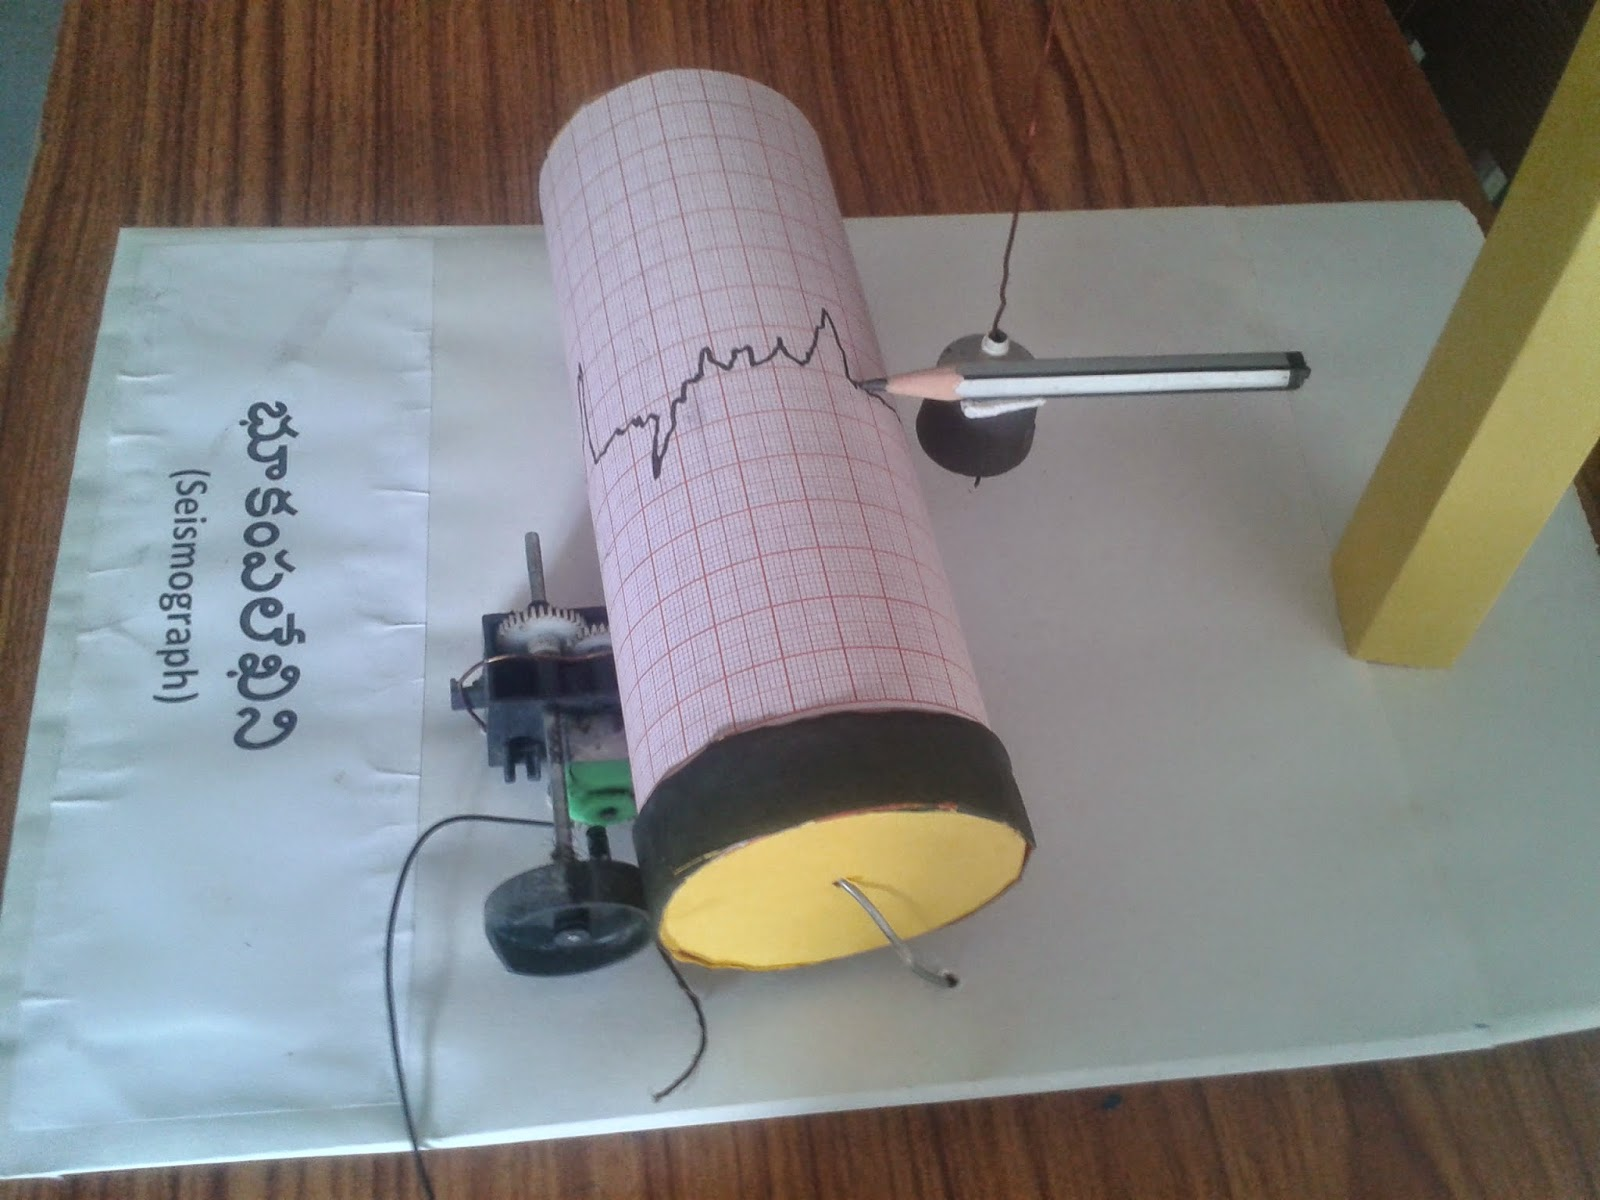 SEISMOGRAPH SCHOOL SCIENCE PROJECT WORKING MODEL